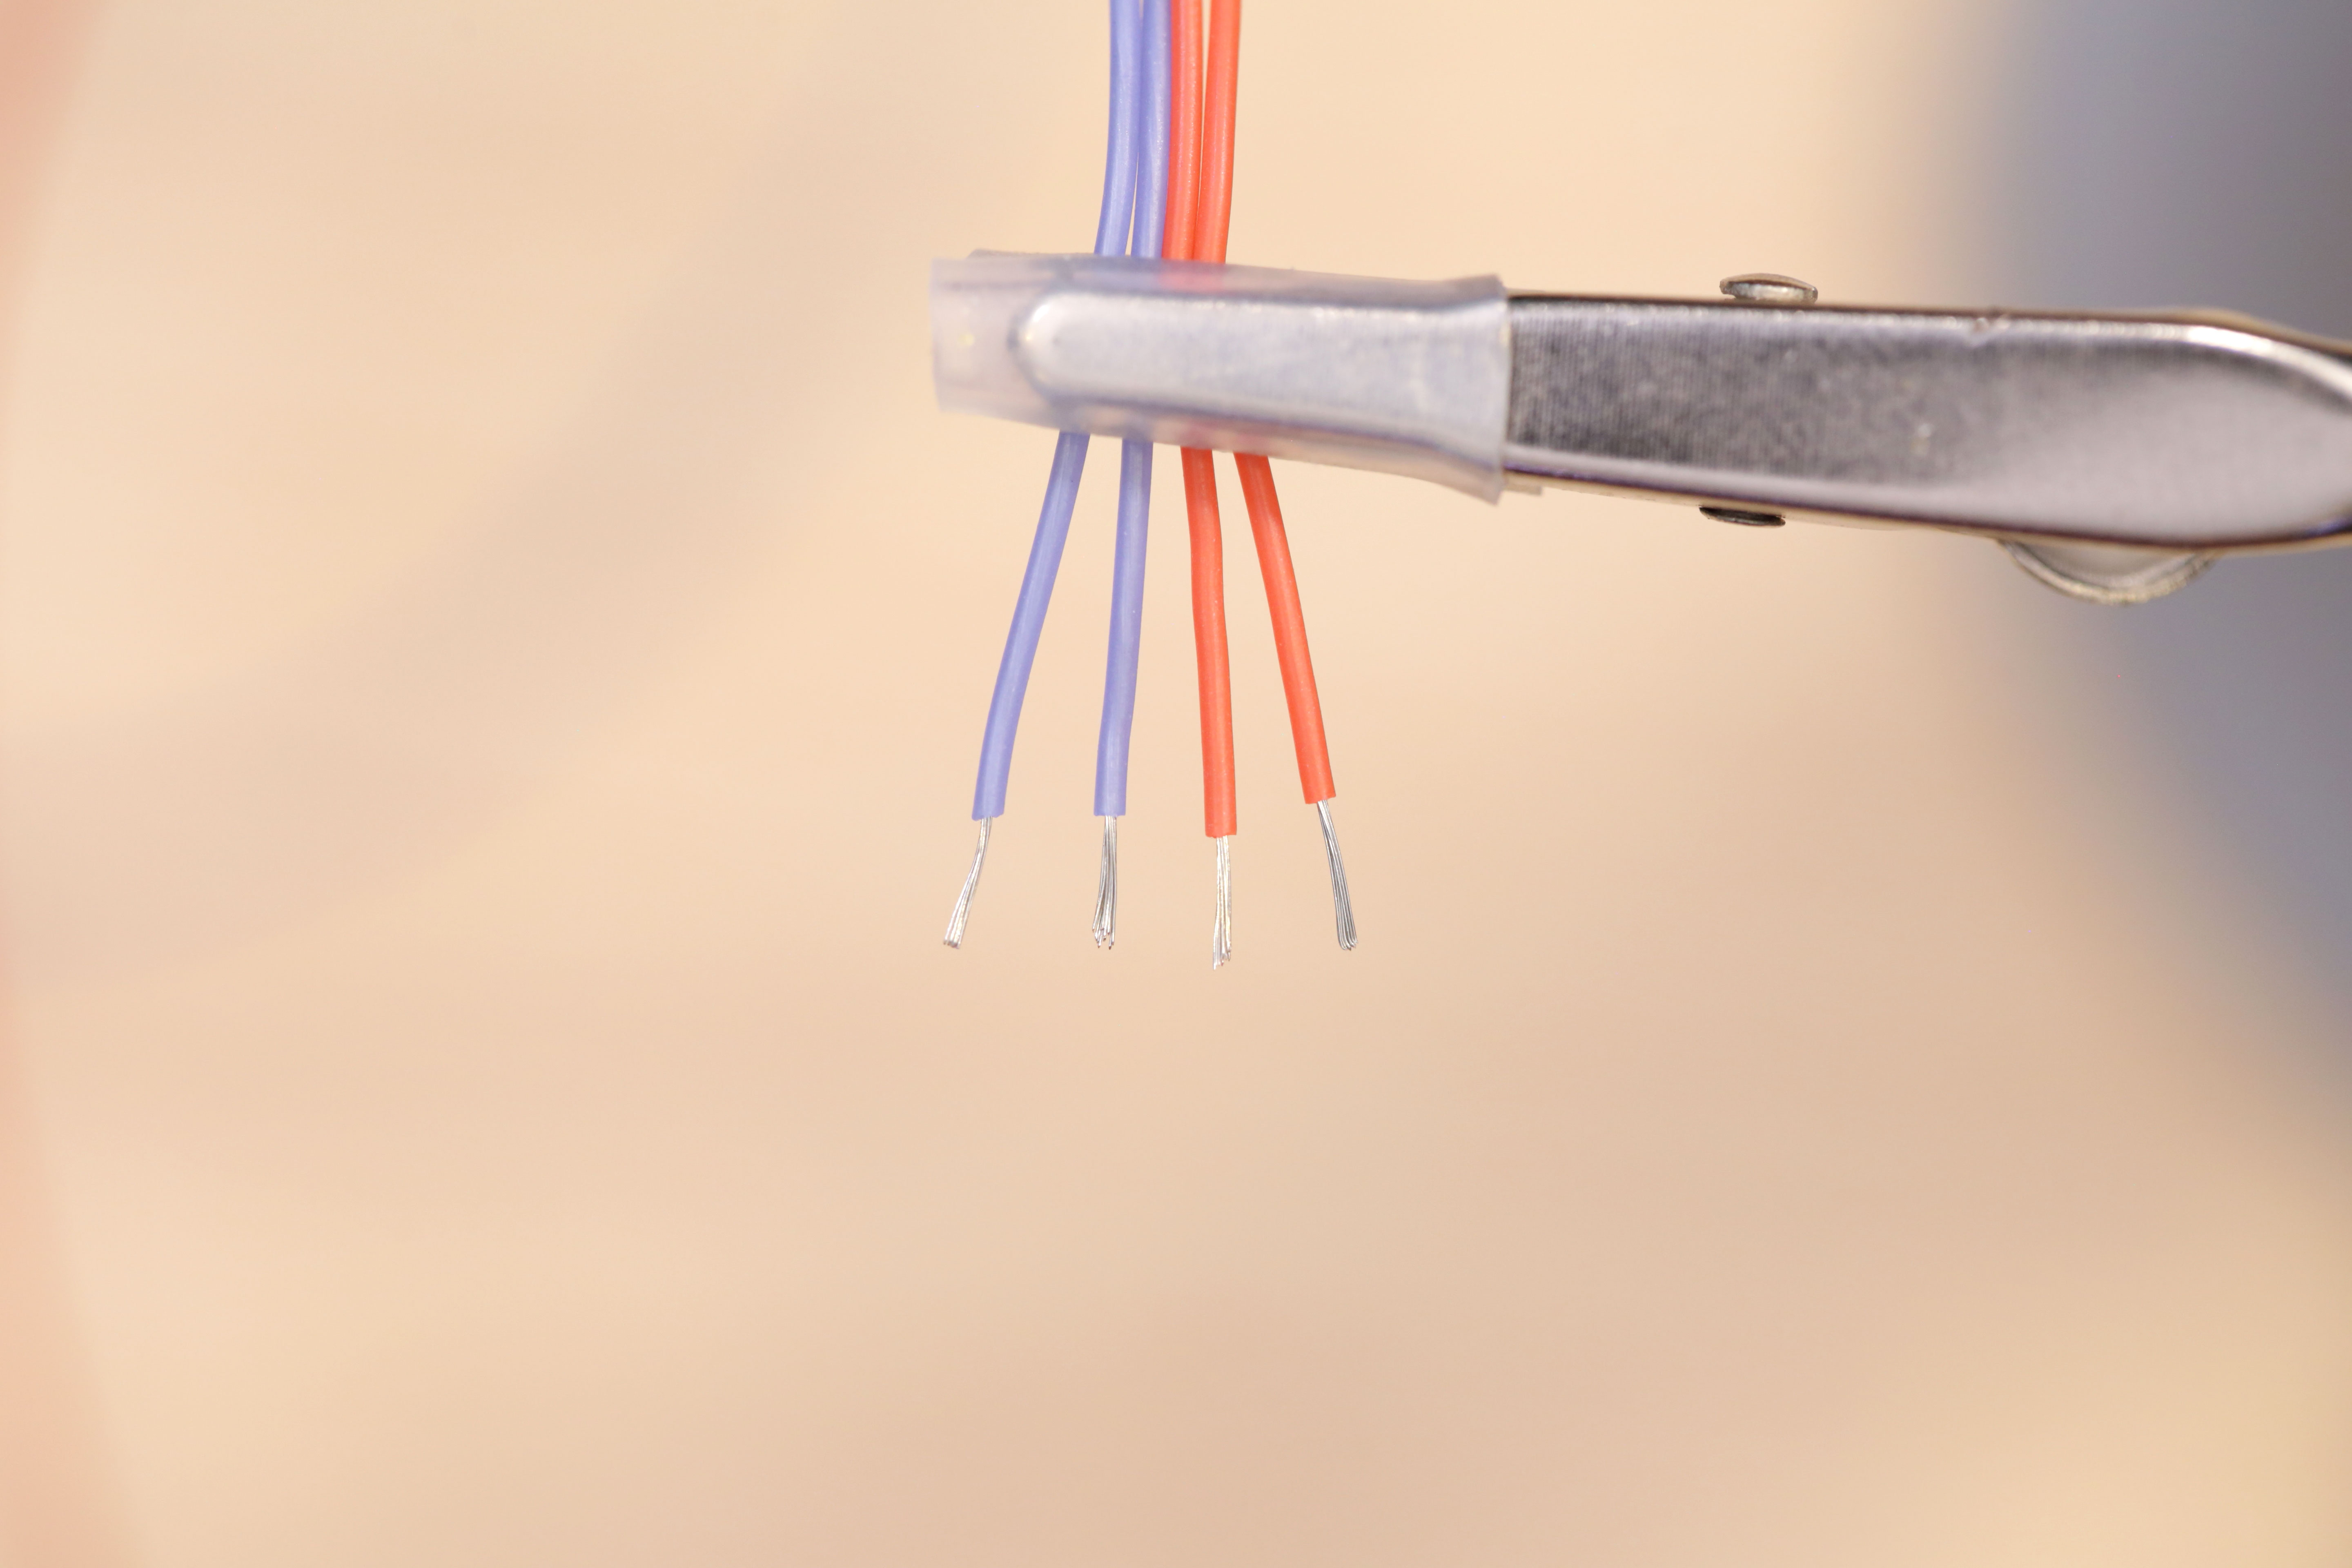 leds_wires-stripped.jpg